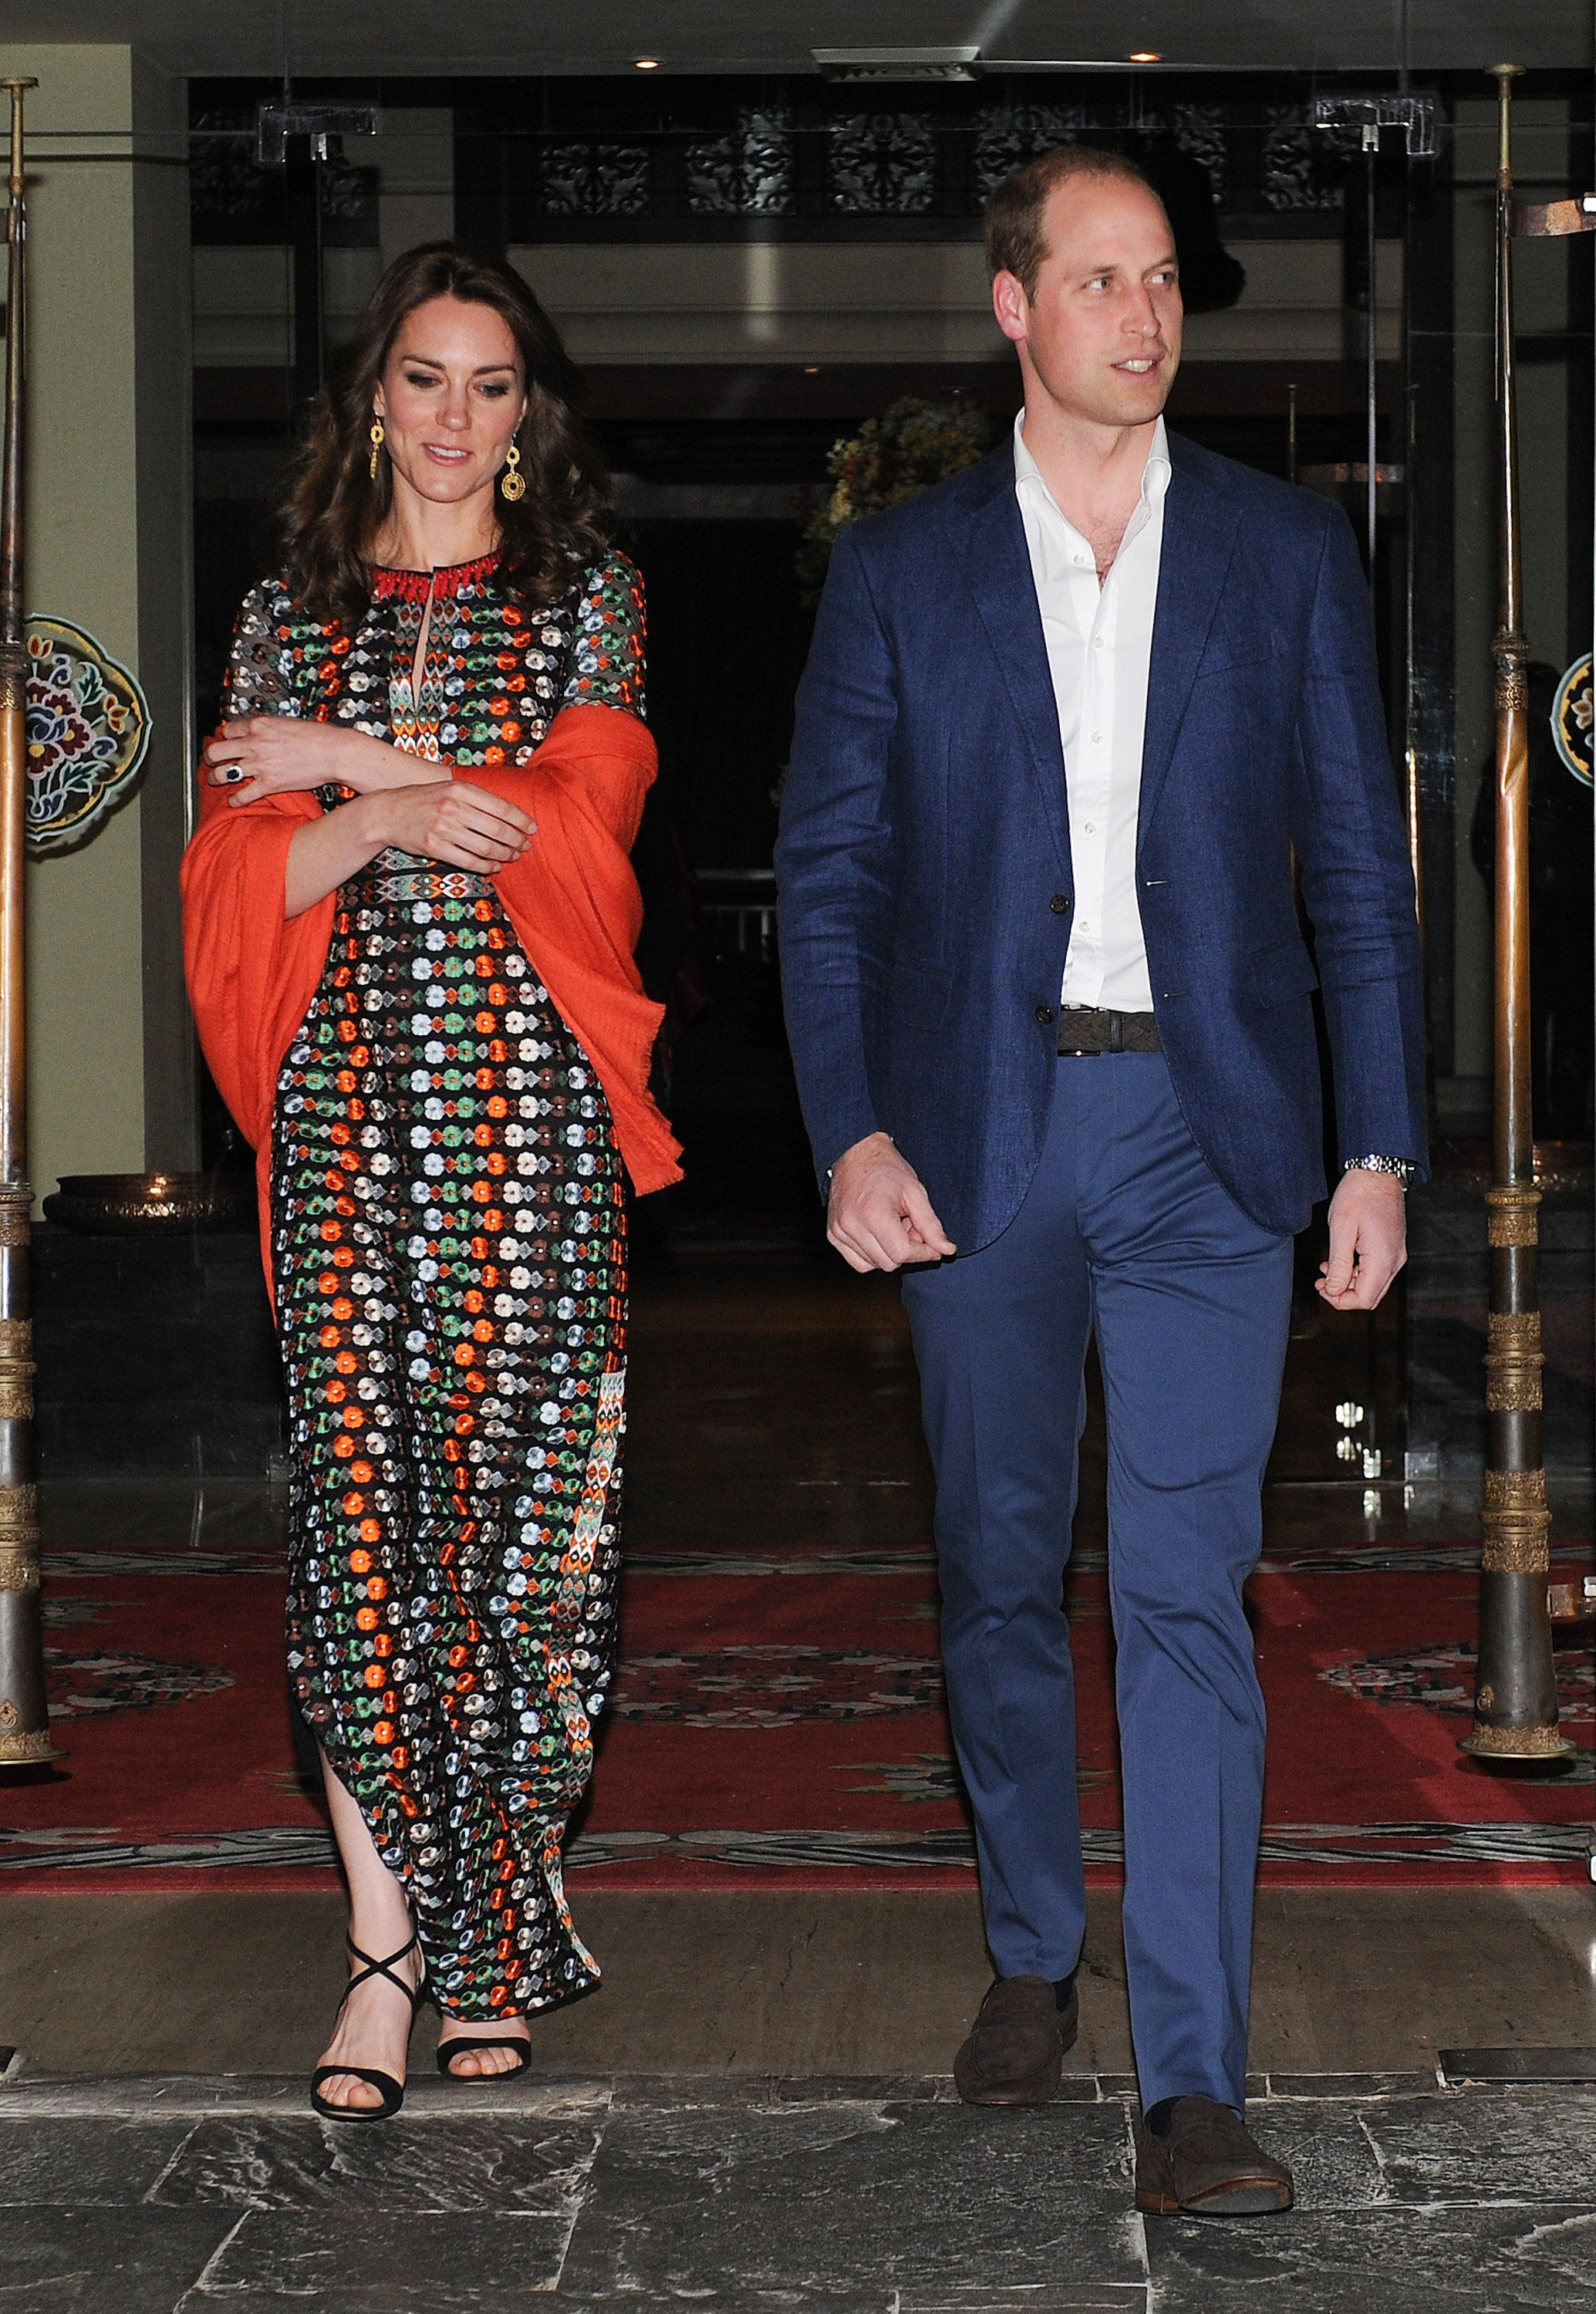 THIMPHU, BHUTAN - APRIL 14:  Prince William, Duke of Cambridge and Catherine, Duchess of Cambridge attends a private dinner with the King and Queen of Bhutan on April 14, 2016 in Thimphu, Bhutan.  (Photo by Samir Hussein/Poo/WireImage)